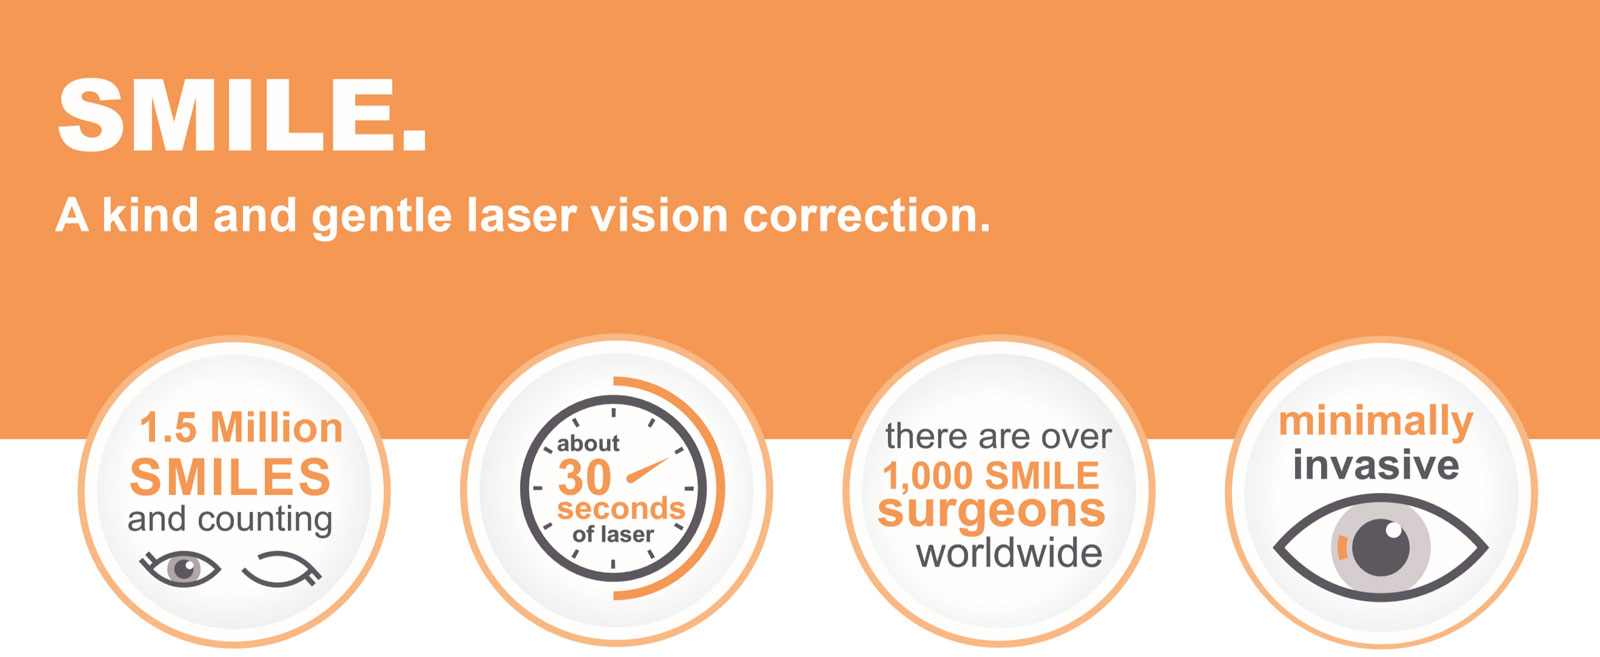 SMILE Laser Vision Correction Procedure